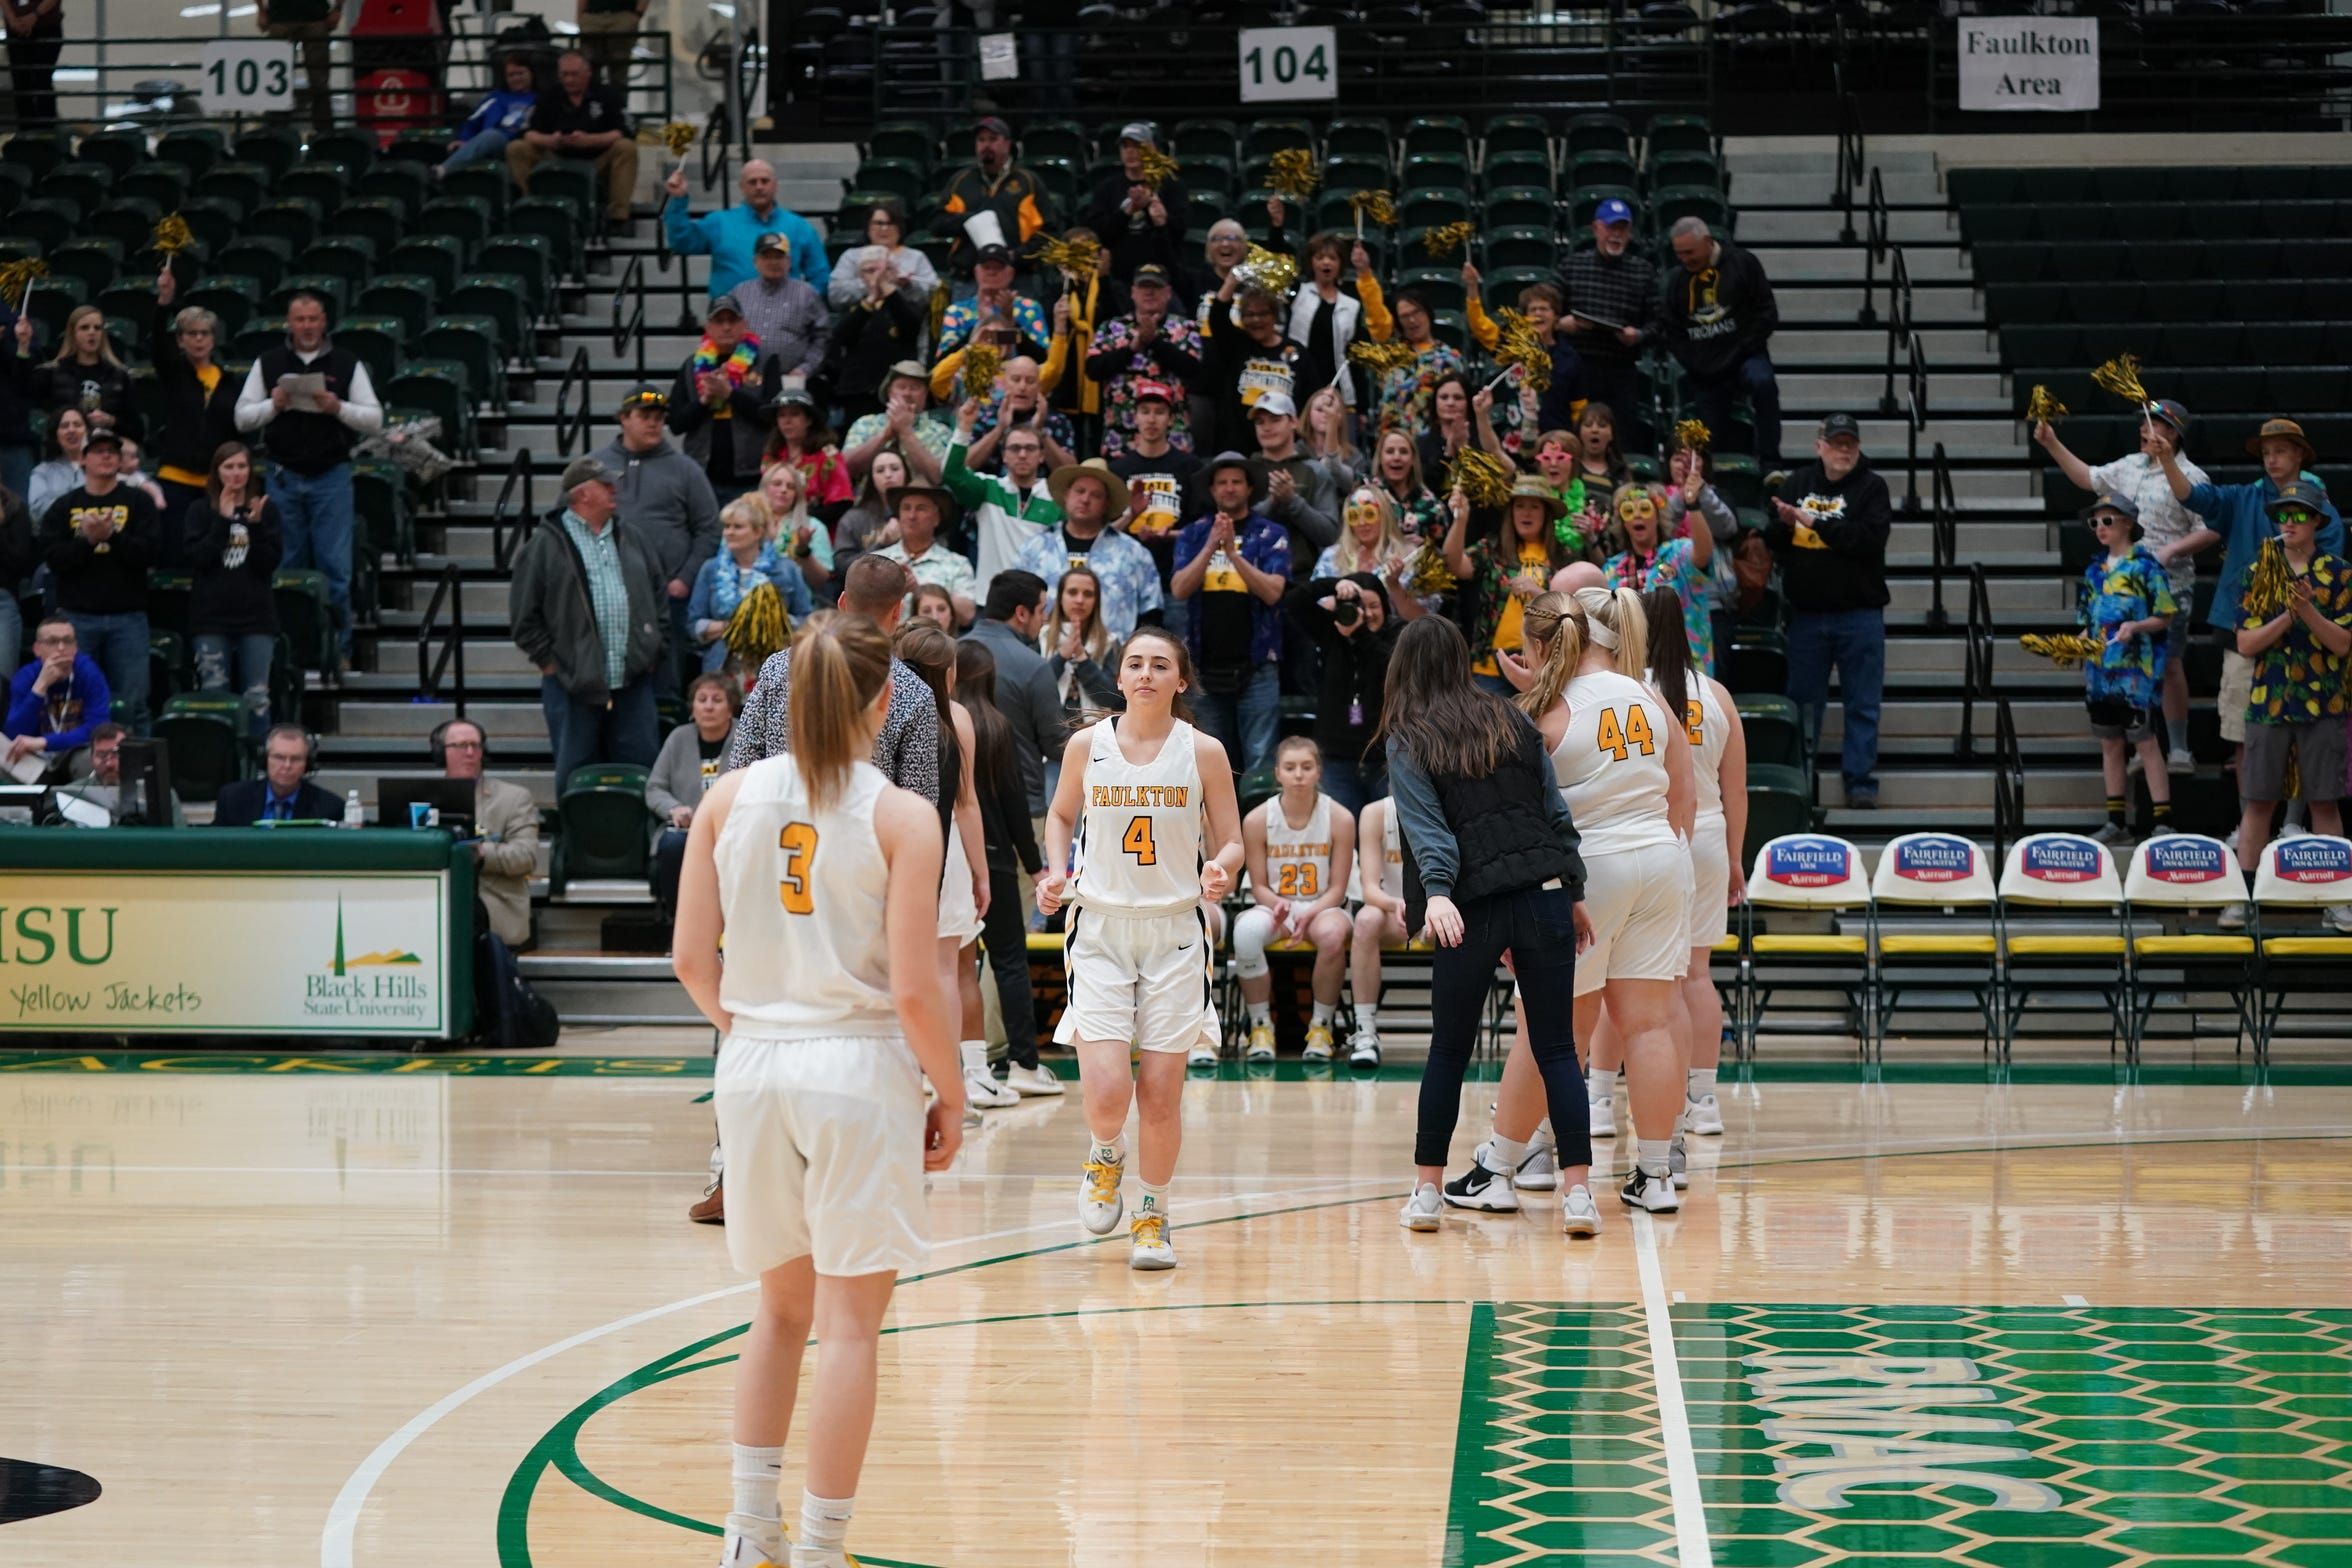 Faulkton Area girls are introduced during the Class B state tournament.